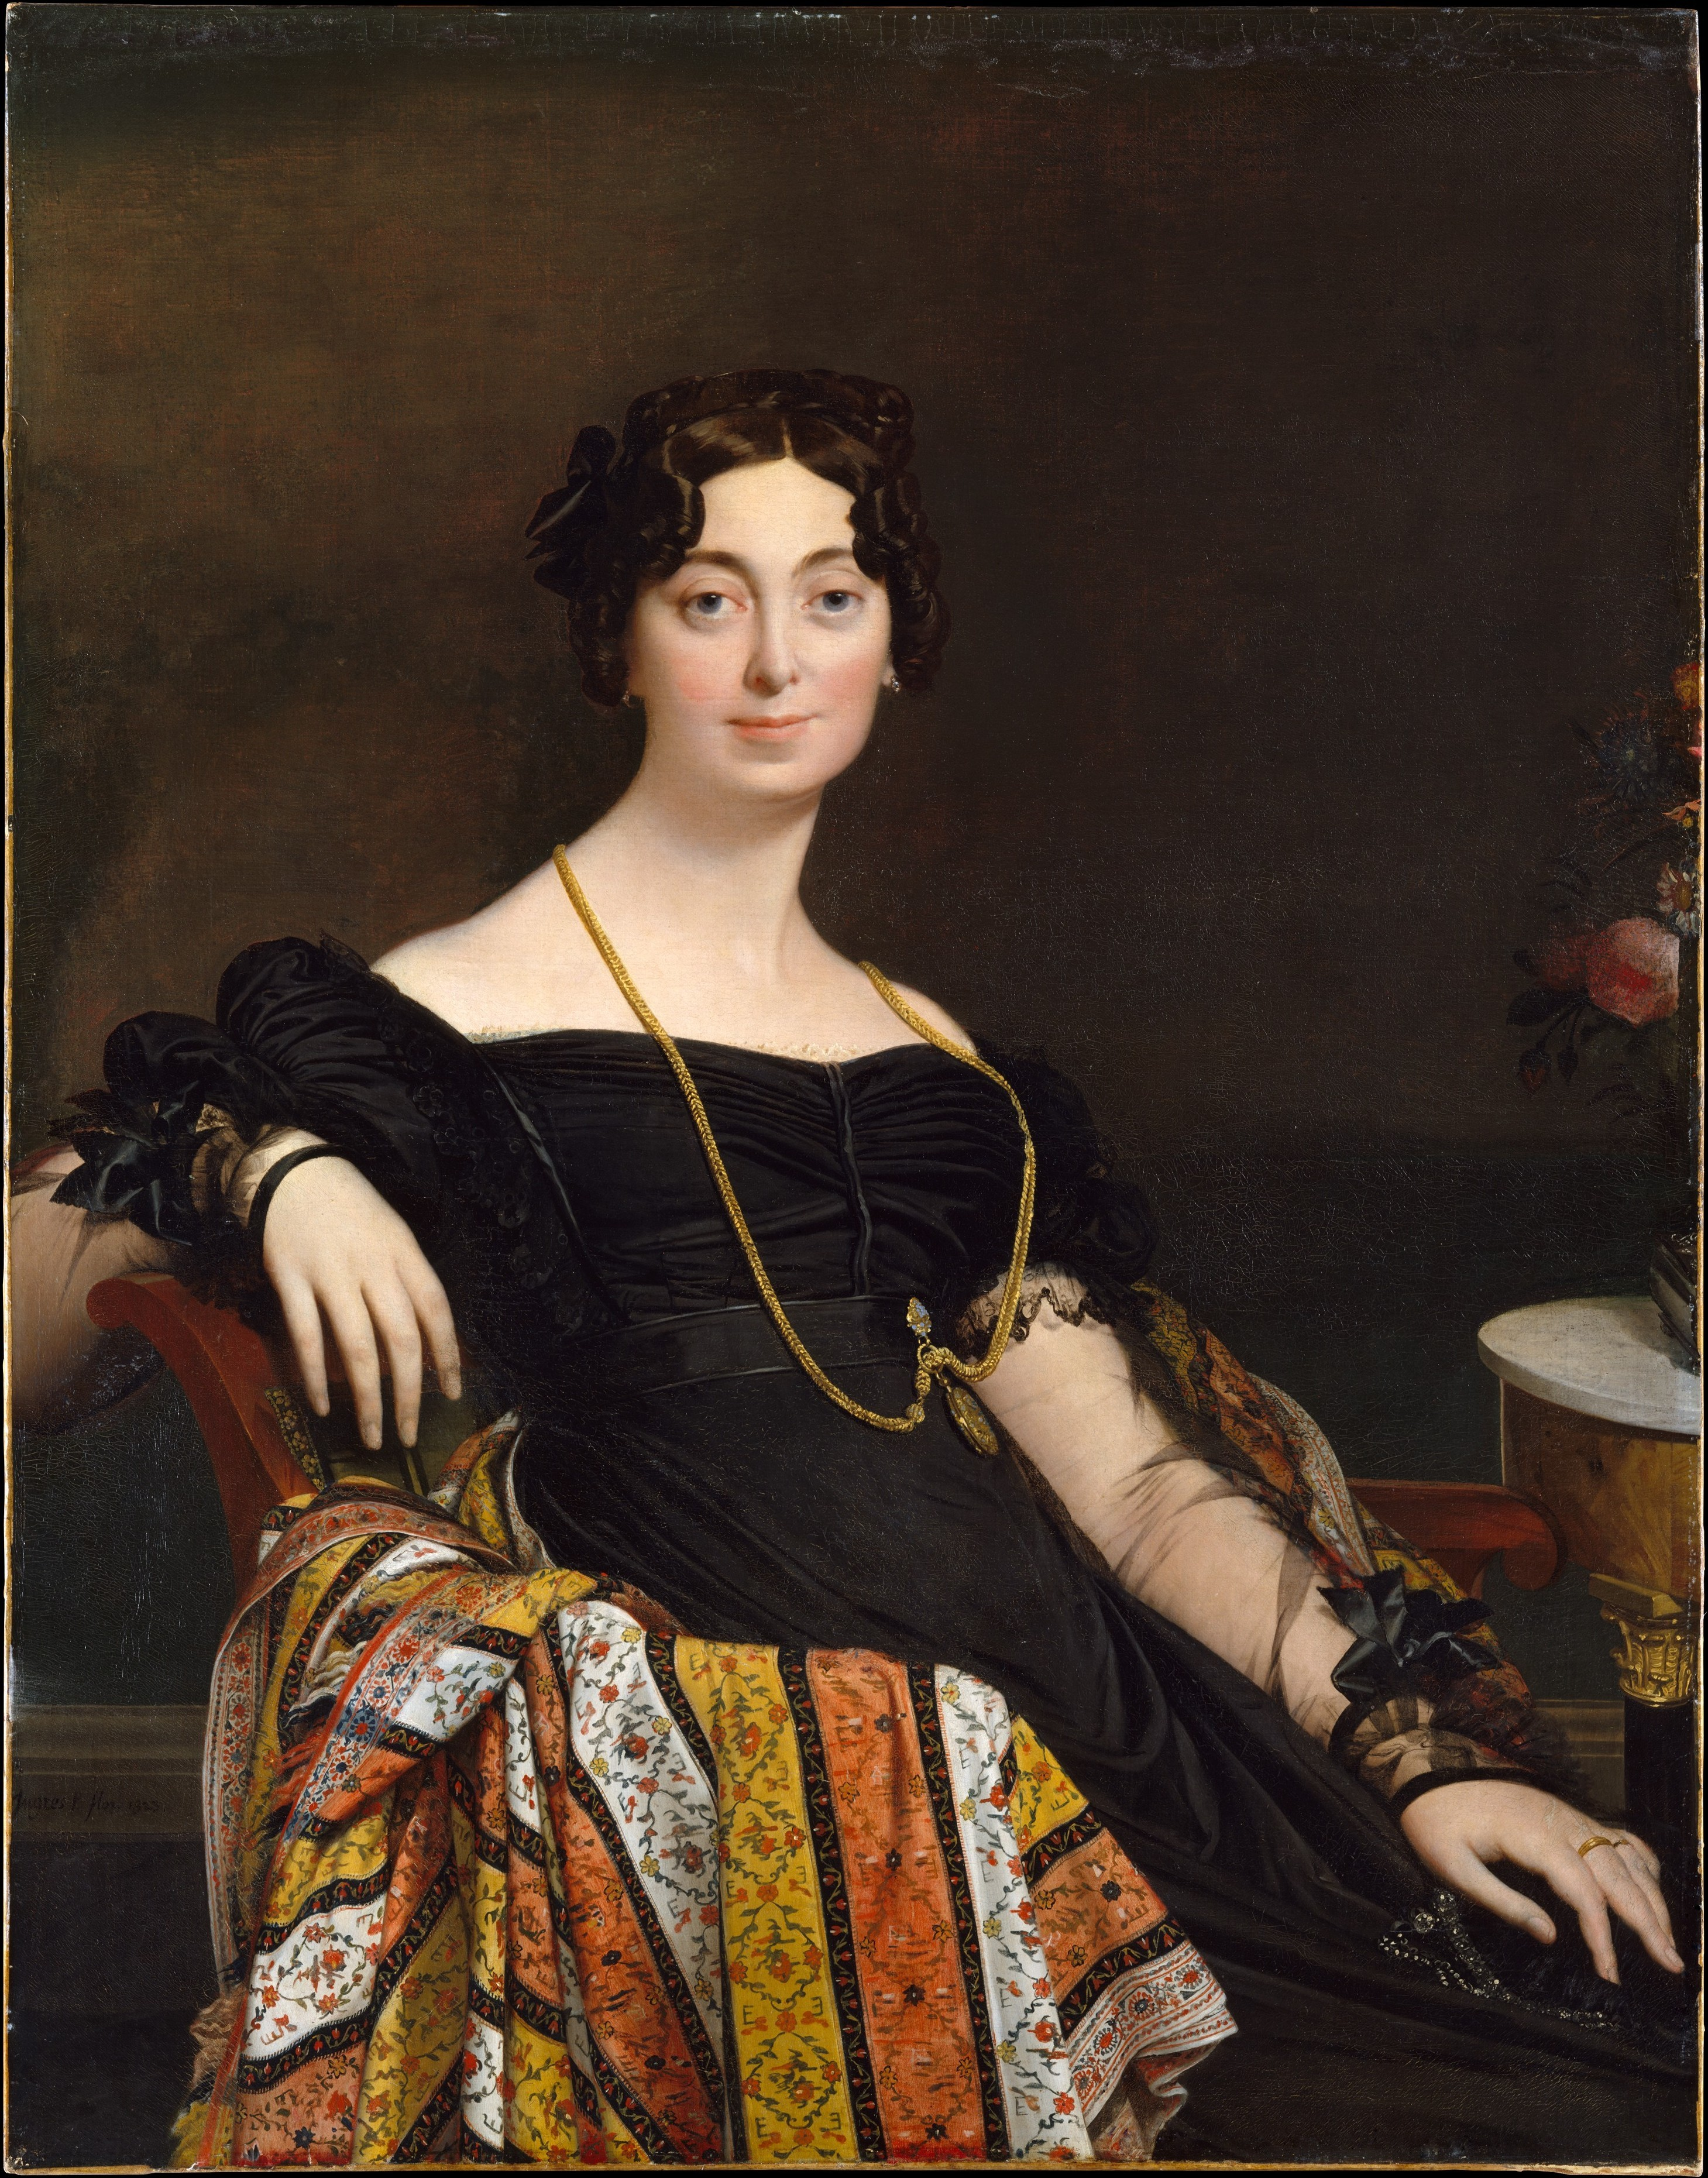 1000+ images about Ingres on Pinterest | Search ...